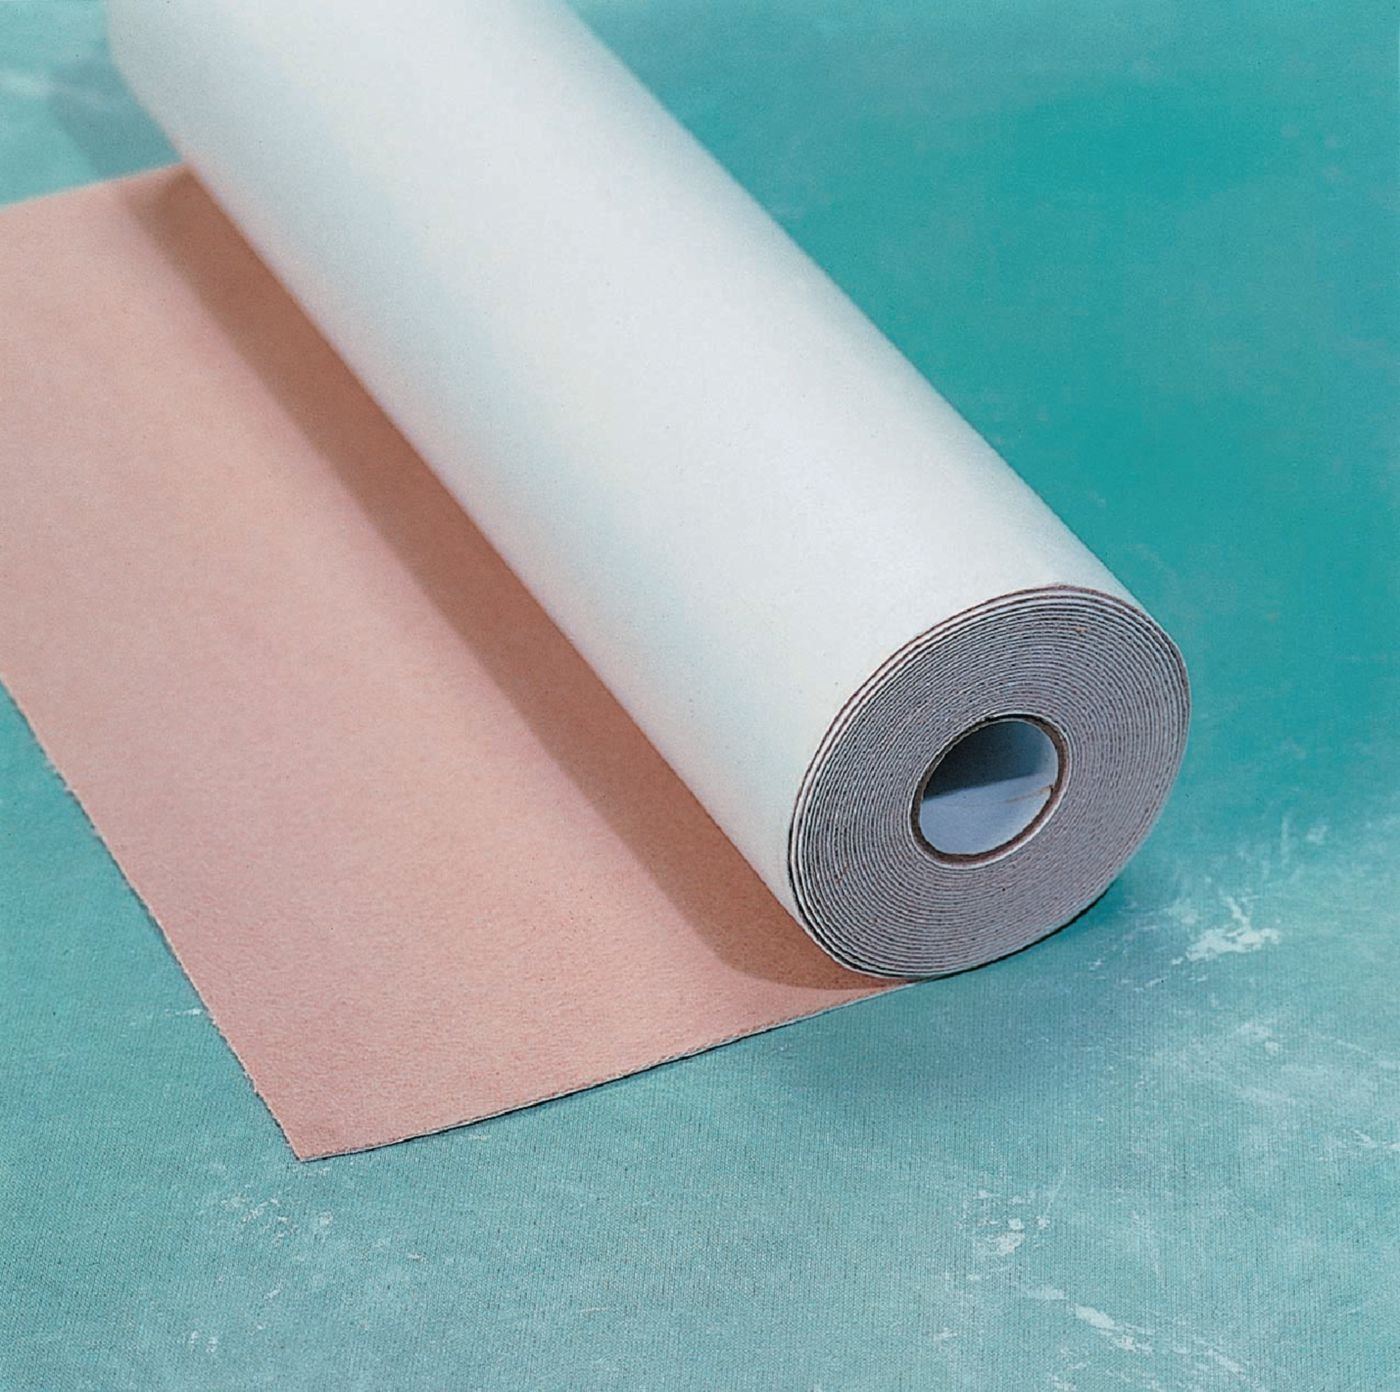 Economy Moleskin Rolls, 1/32'' x 12'' x 5 yd. (0.8mm x 30cm x 4.6m), Protects Blisters, Sores, Calluses, and Corns